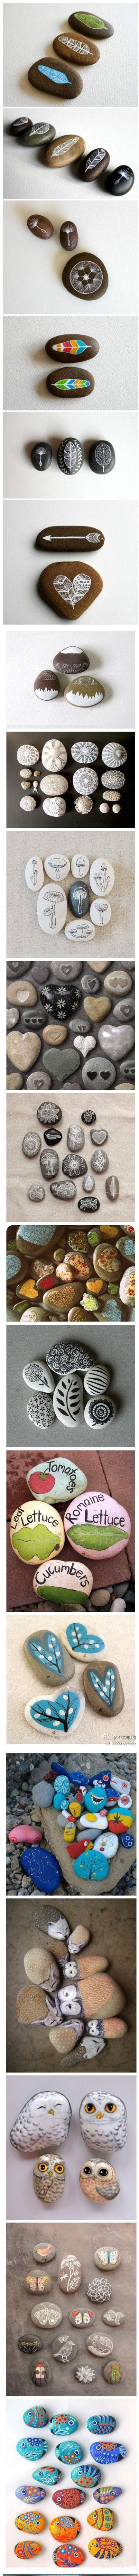 So many types and styles. Painted rocks. beautiful.